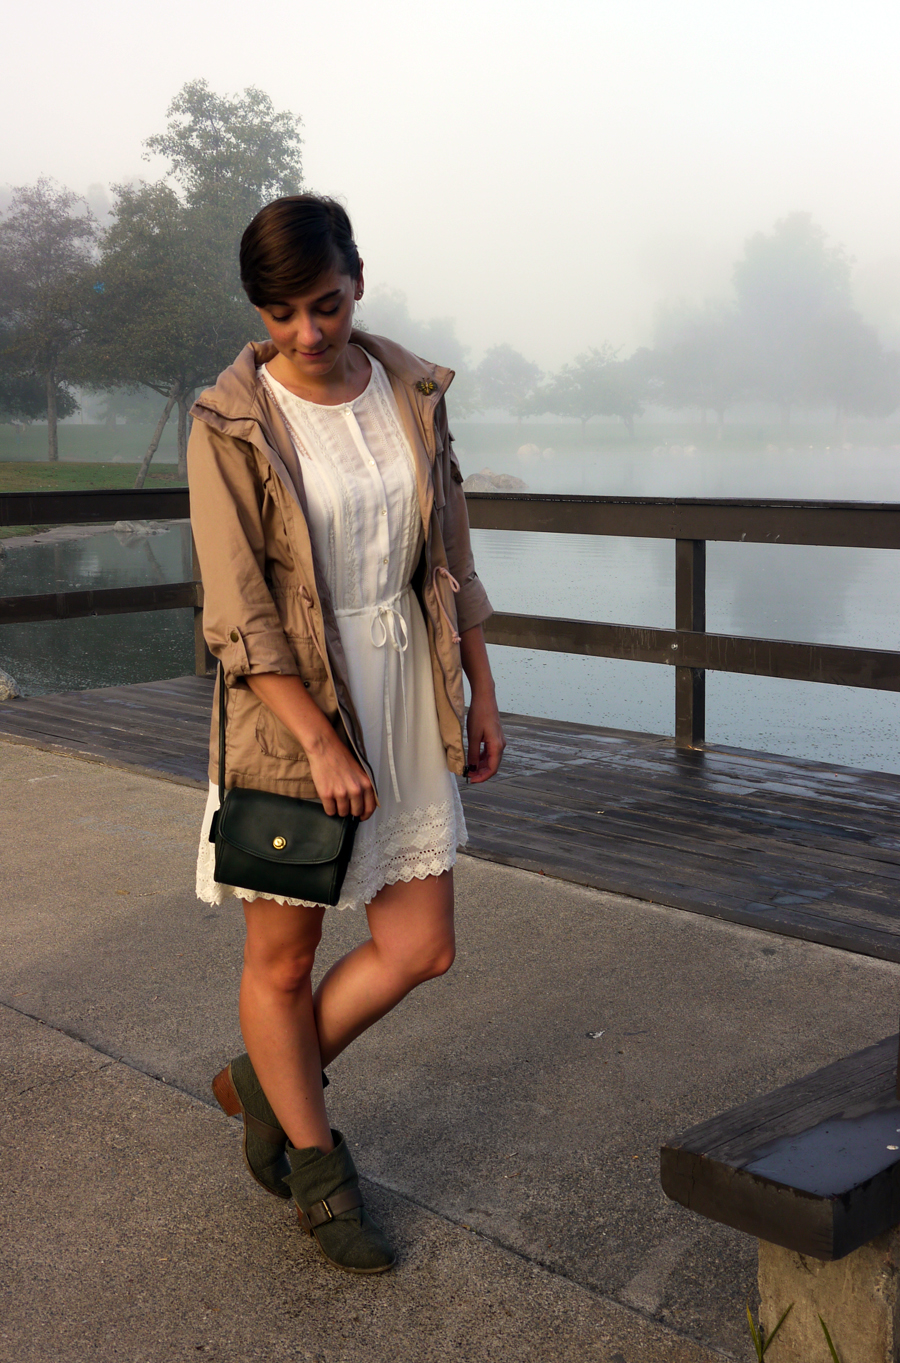 #ootd - white lace dress, military jacket, booties 02